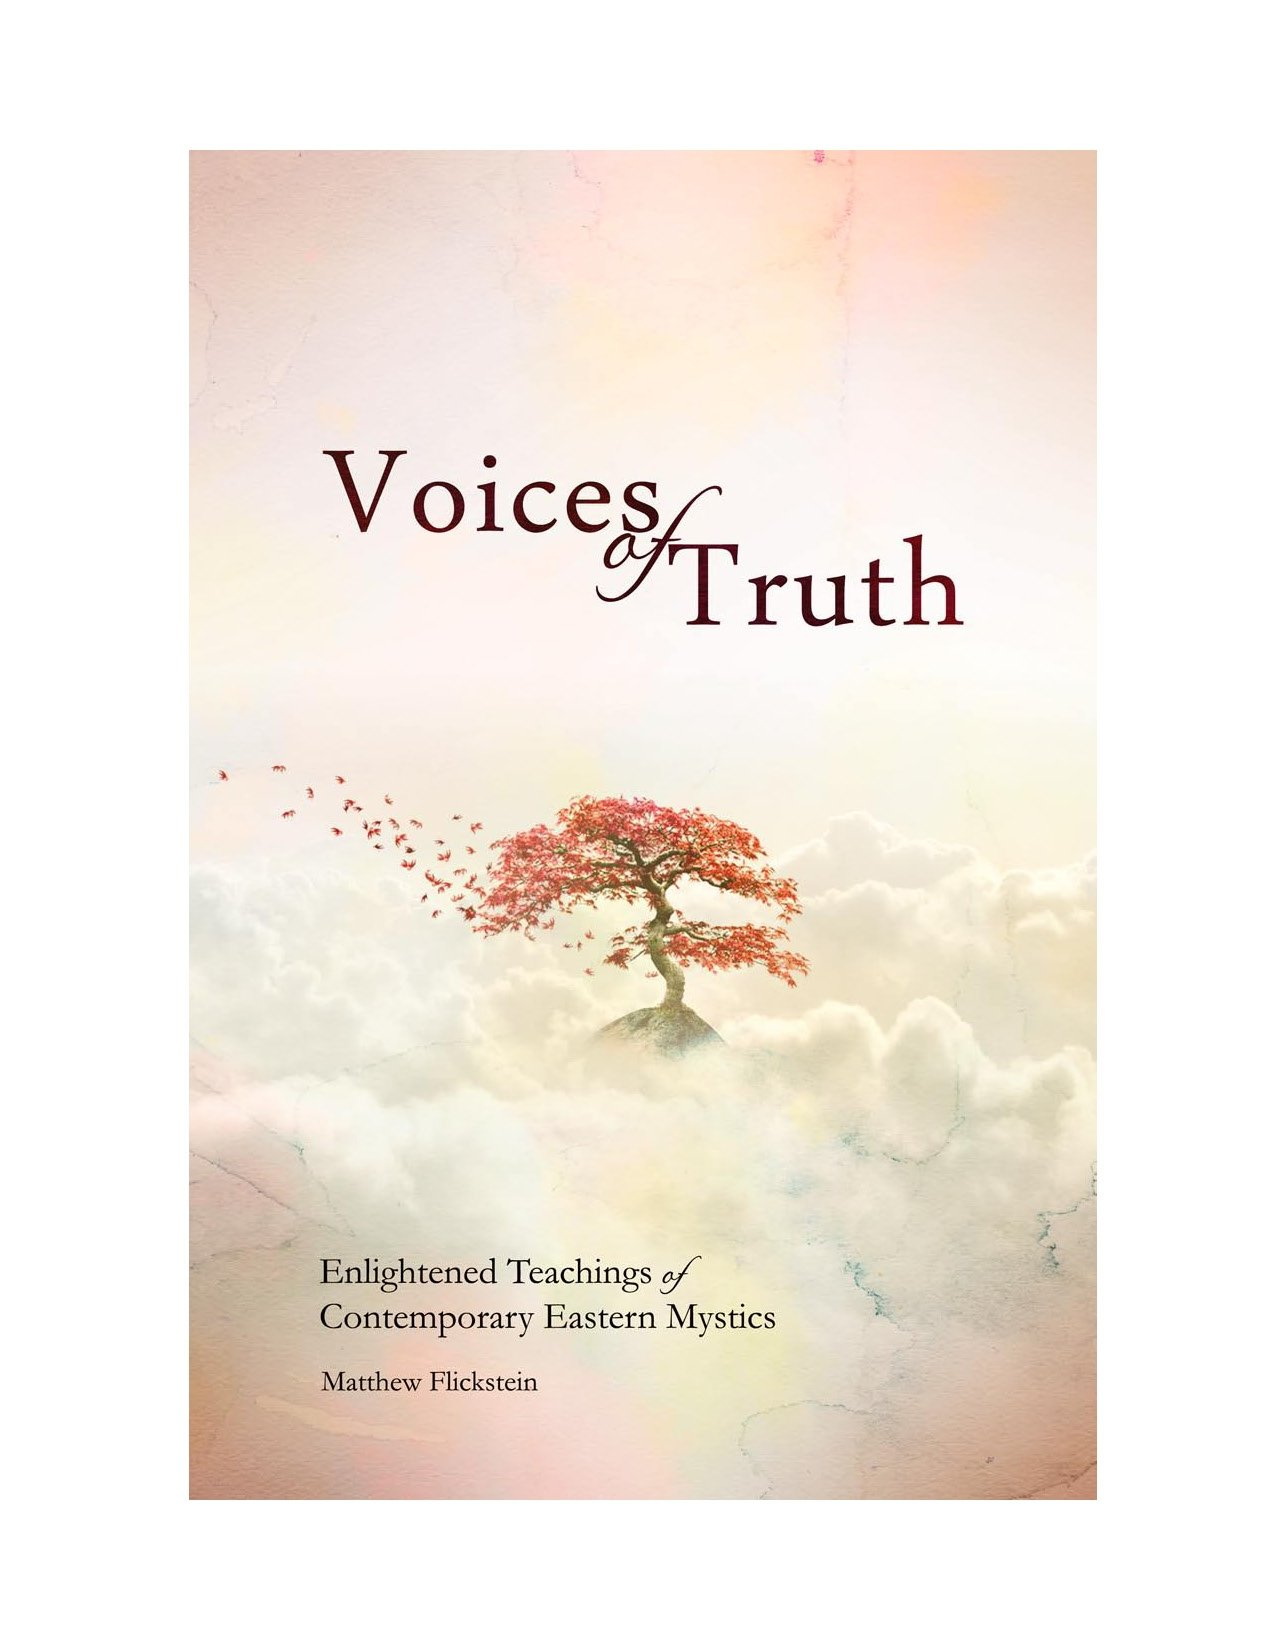 Voices of Truth: Enlightened Teachings of